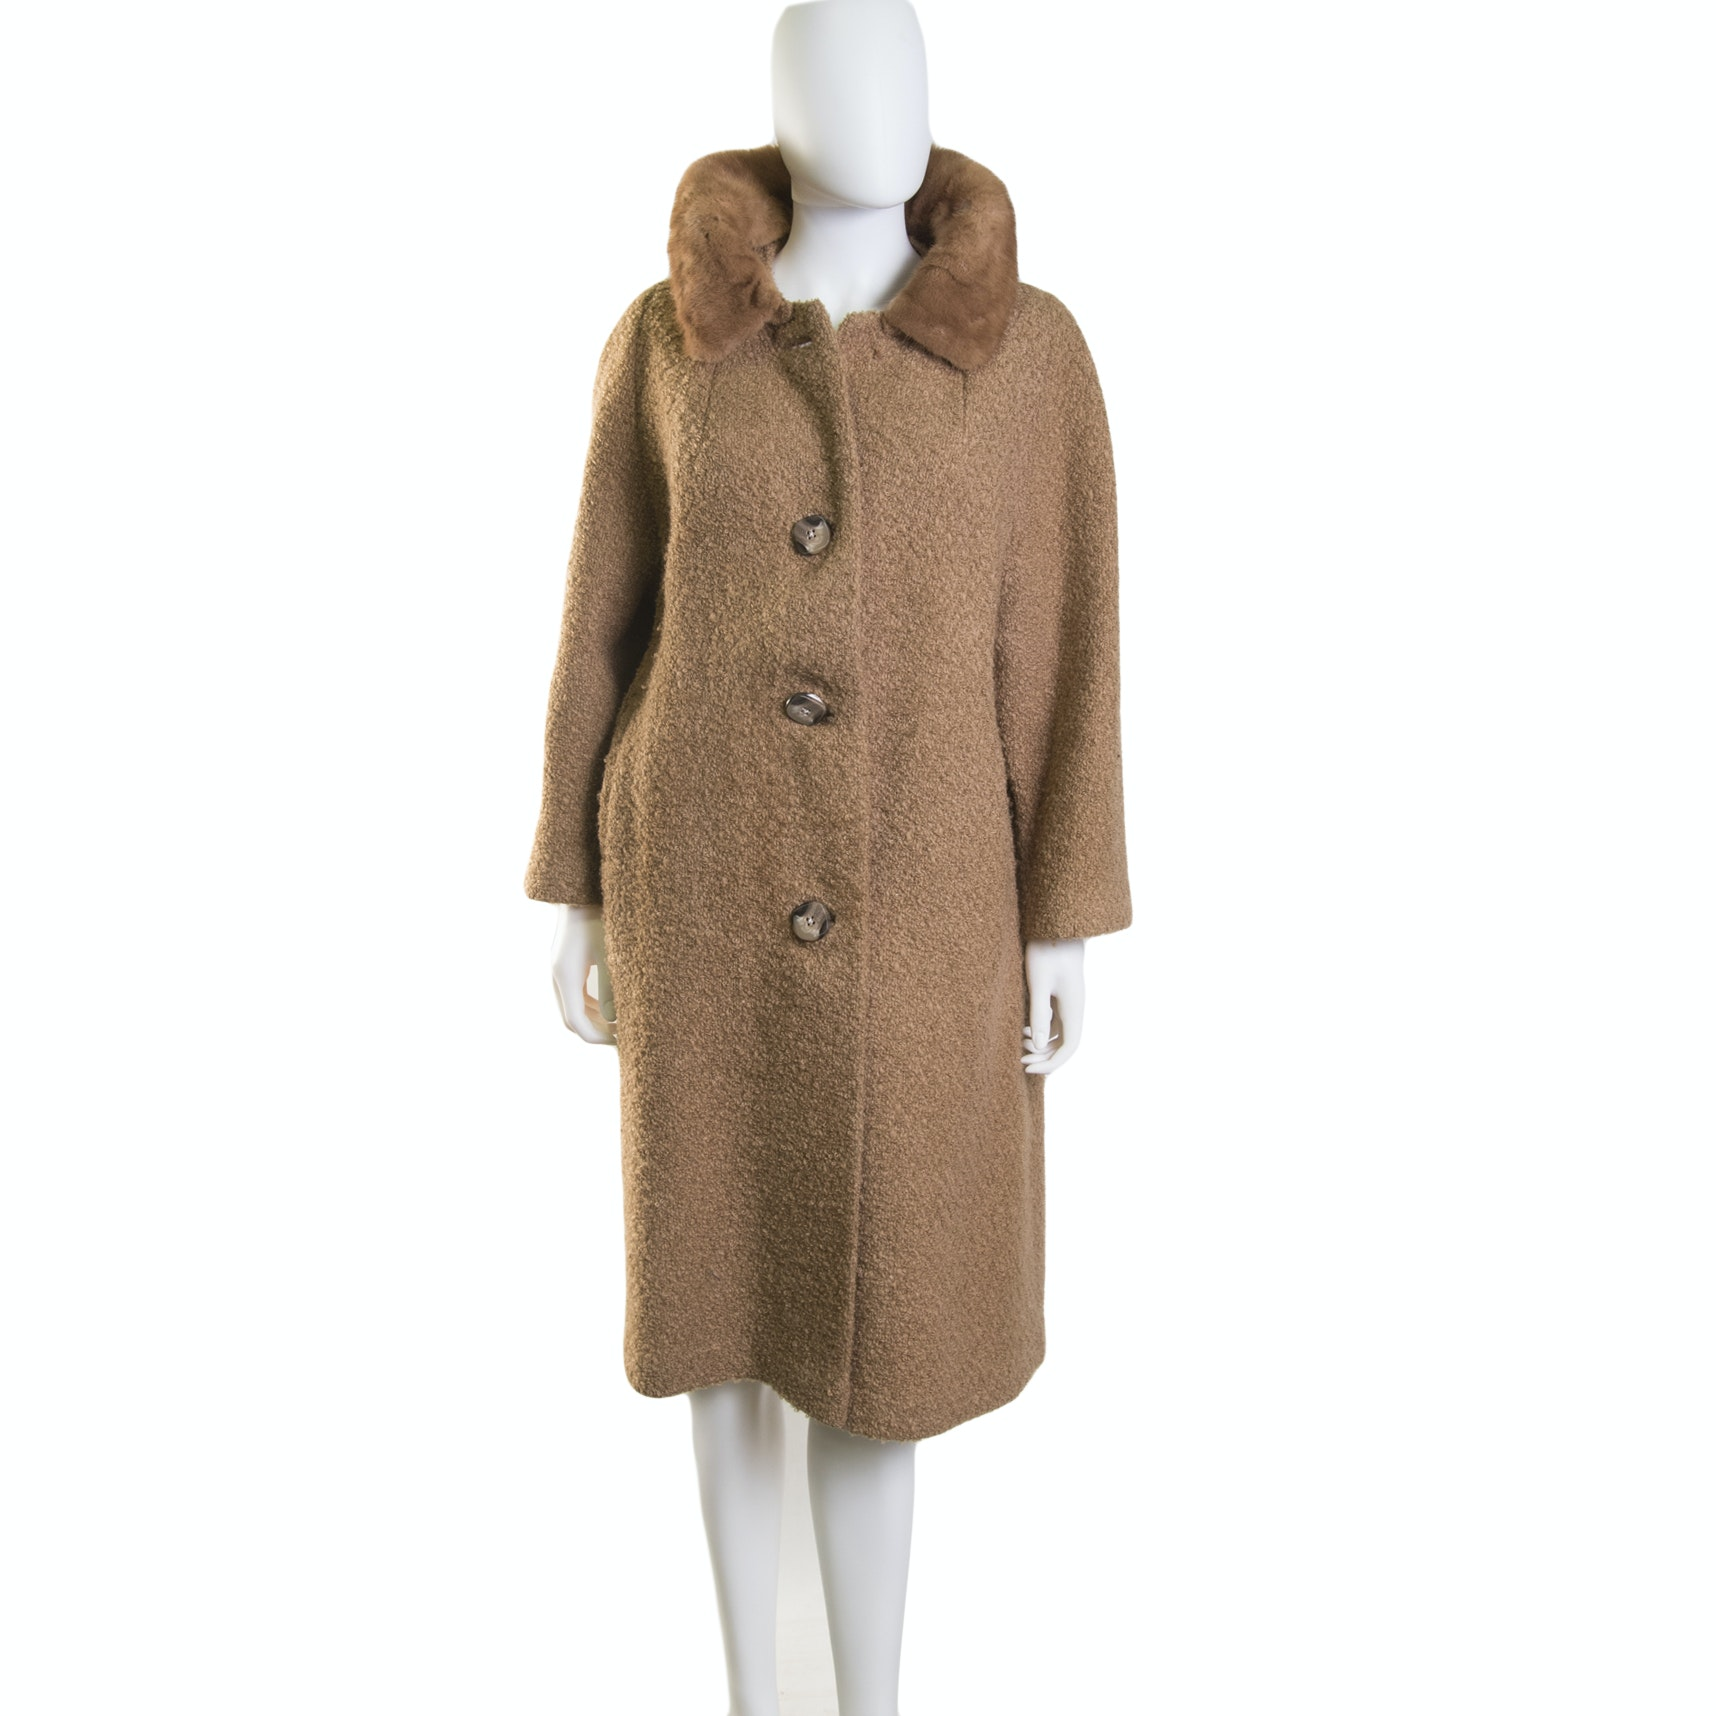 Women's Vintage Bouclé Dress Coat with Mink Collar